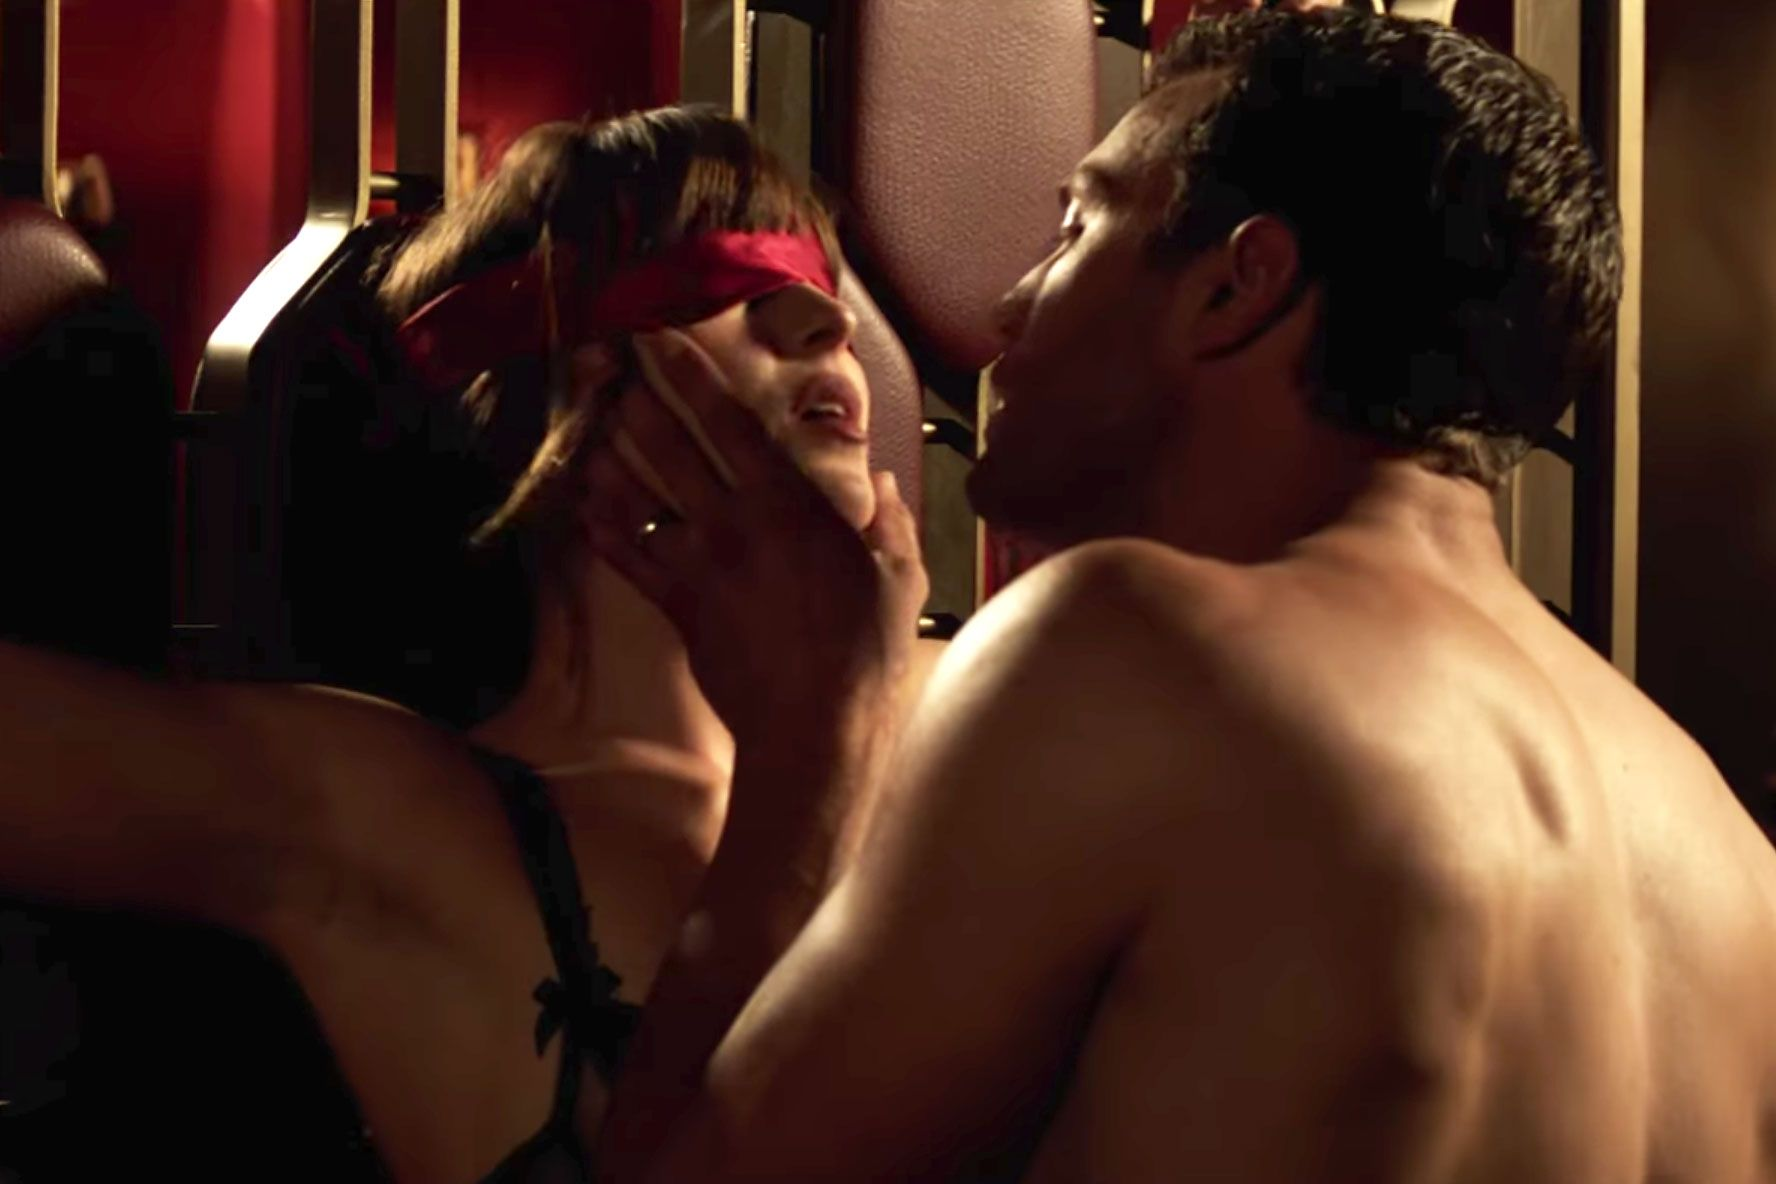 Watch Dakota johnson topless whipping scene from fifty shades of grey video